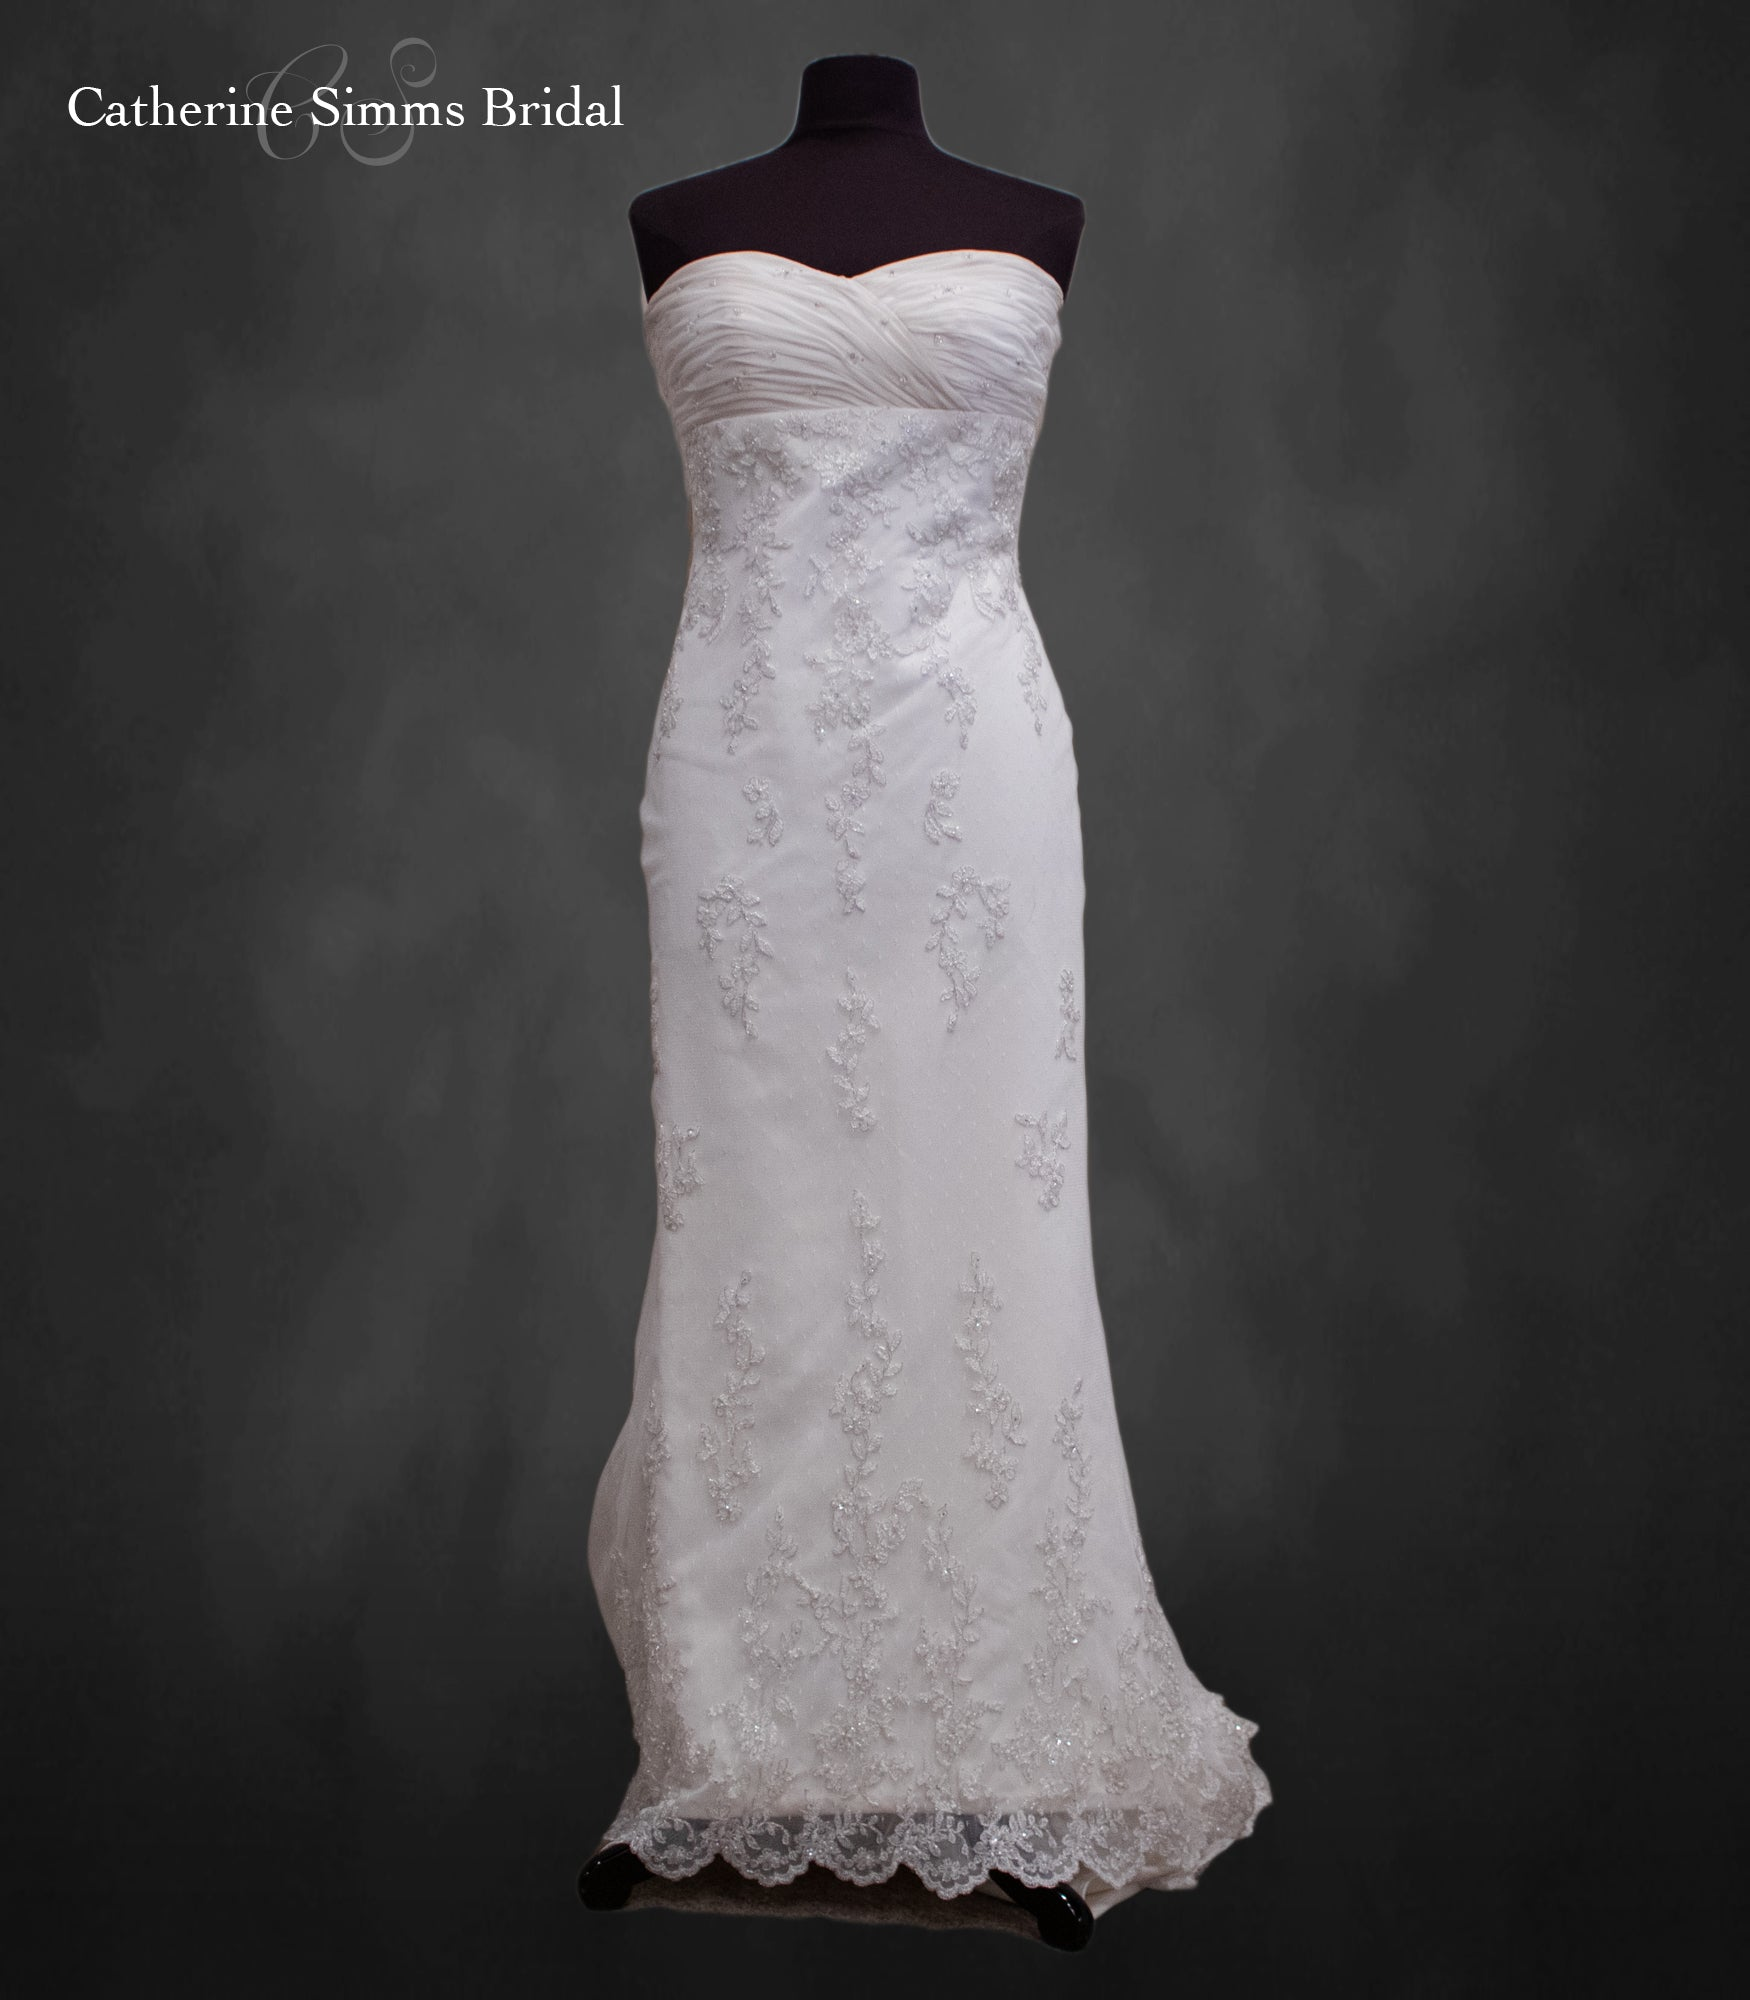 Lace Overlay Sheath